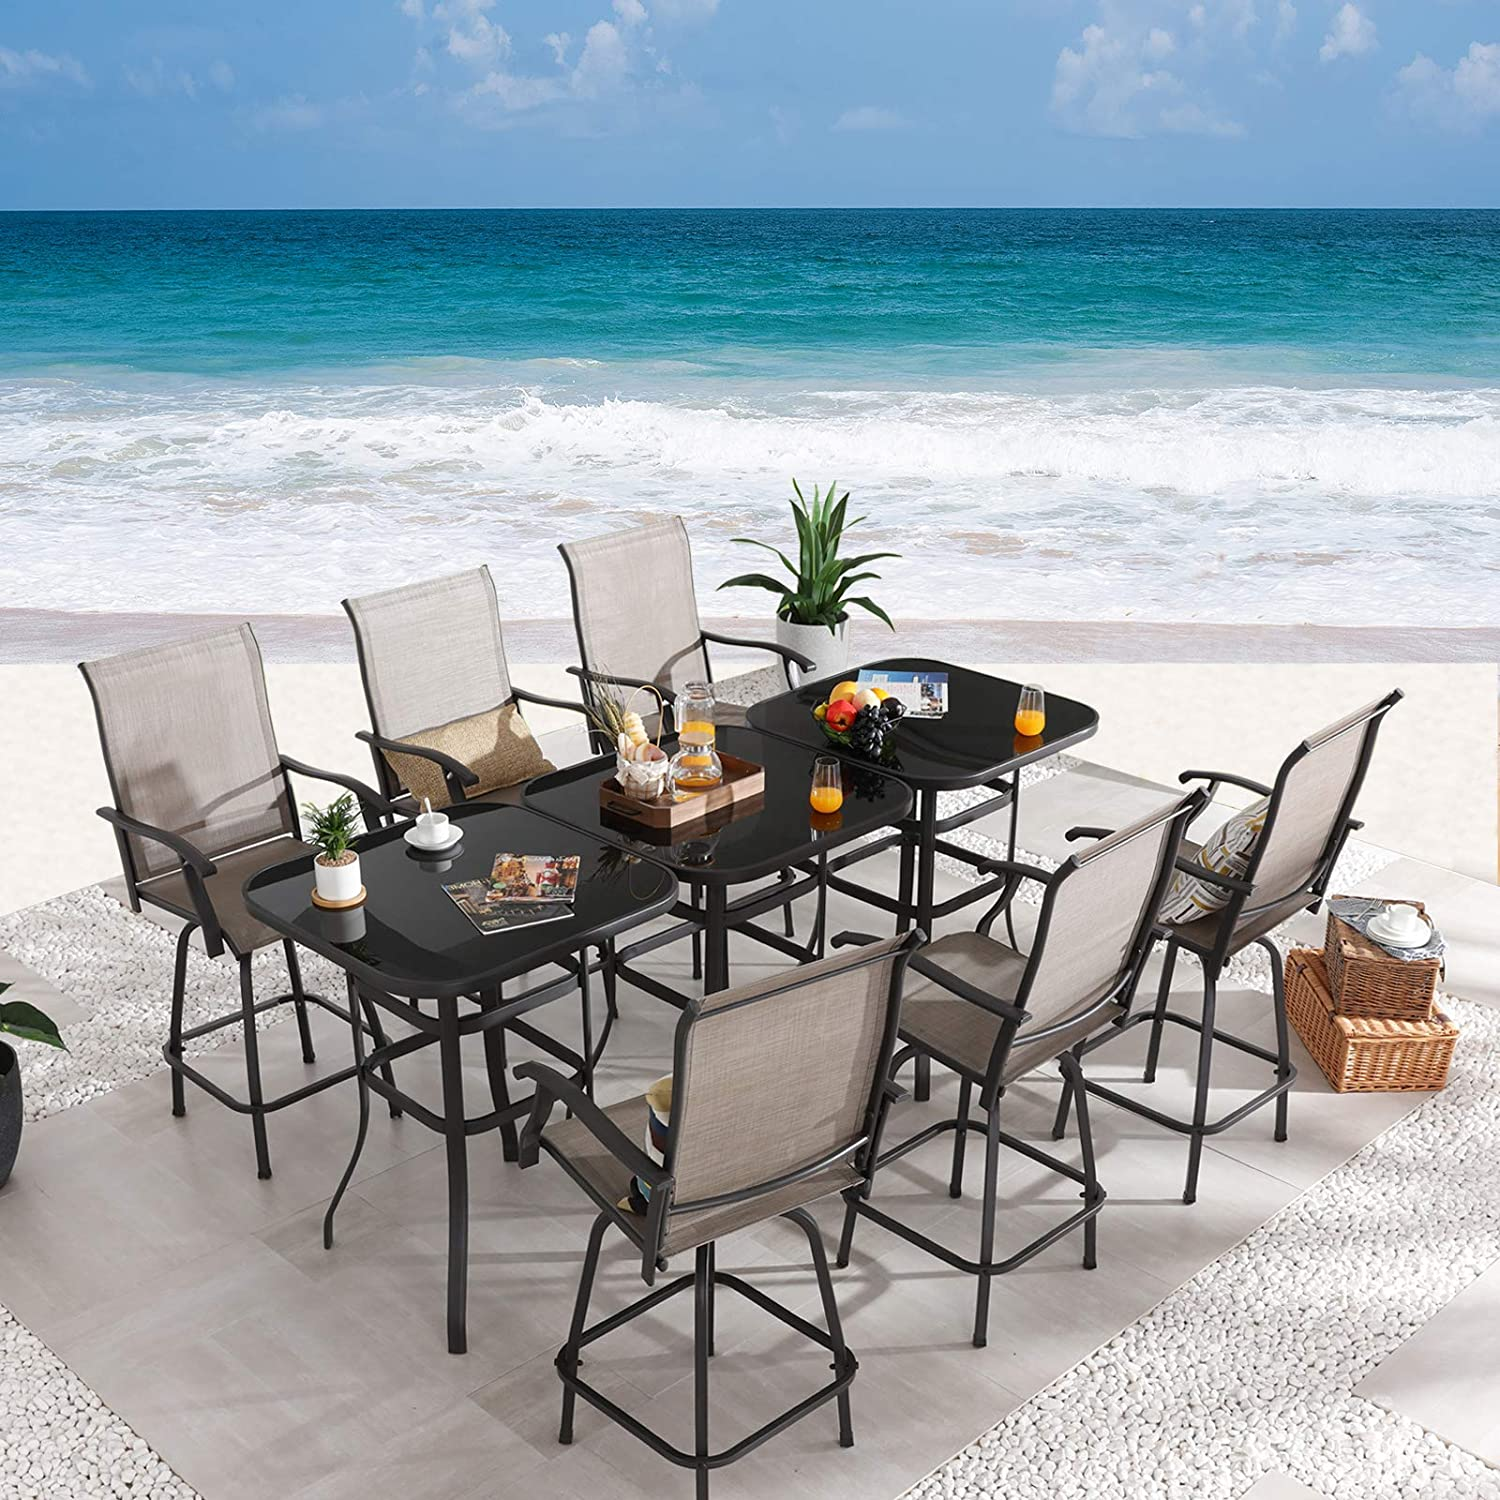 Festival Depot List price 9-Piece Bar Ranking TOP3 Bistro Outdoor Furniture Dining Patio